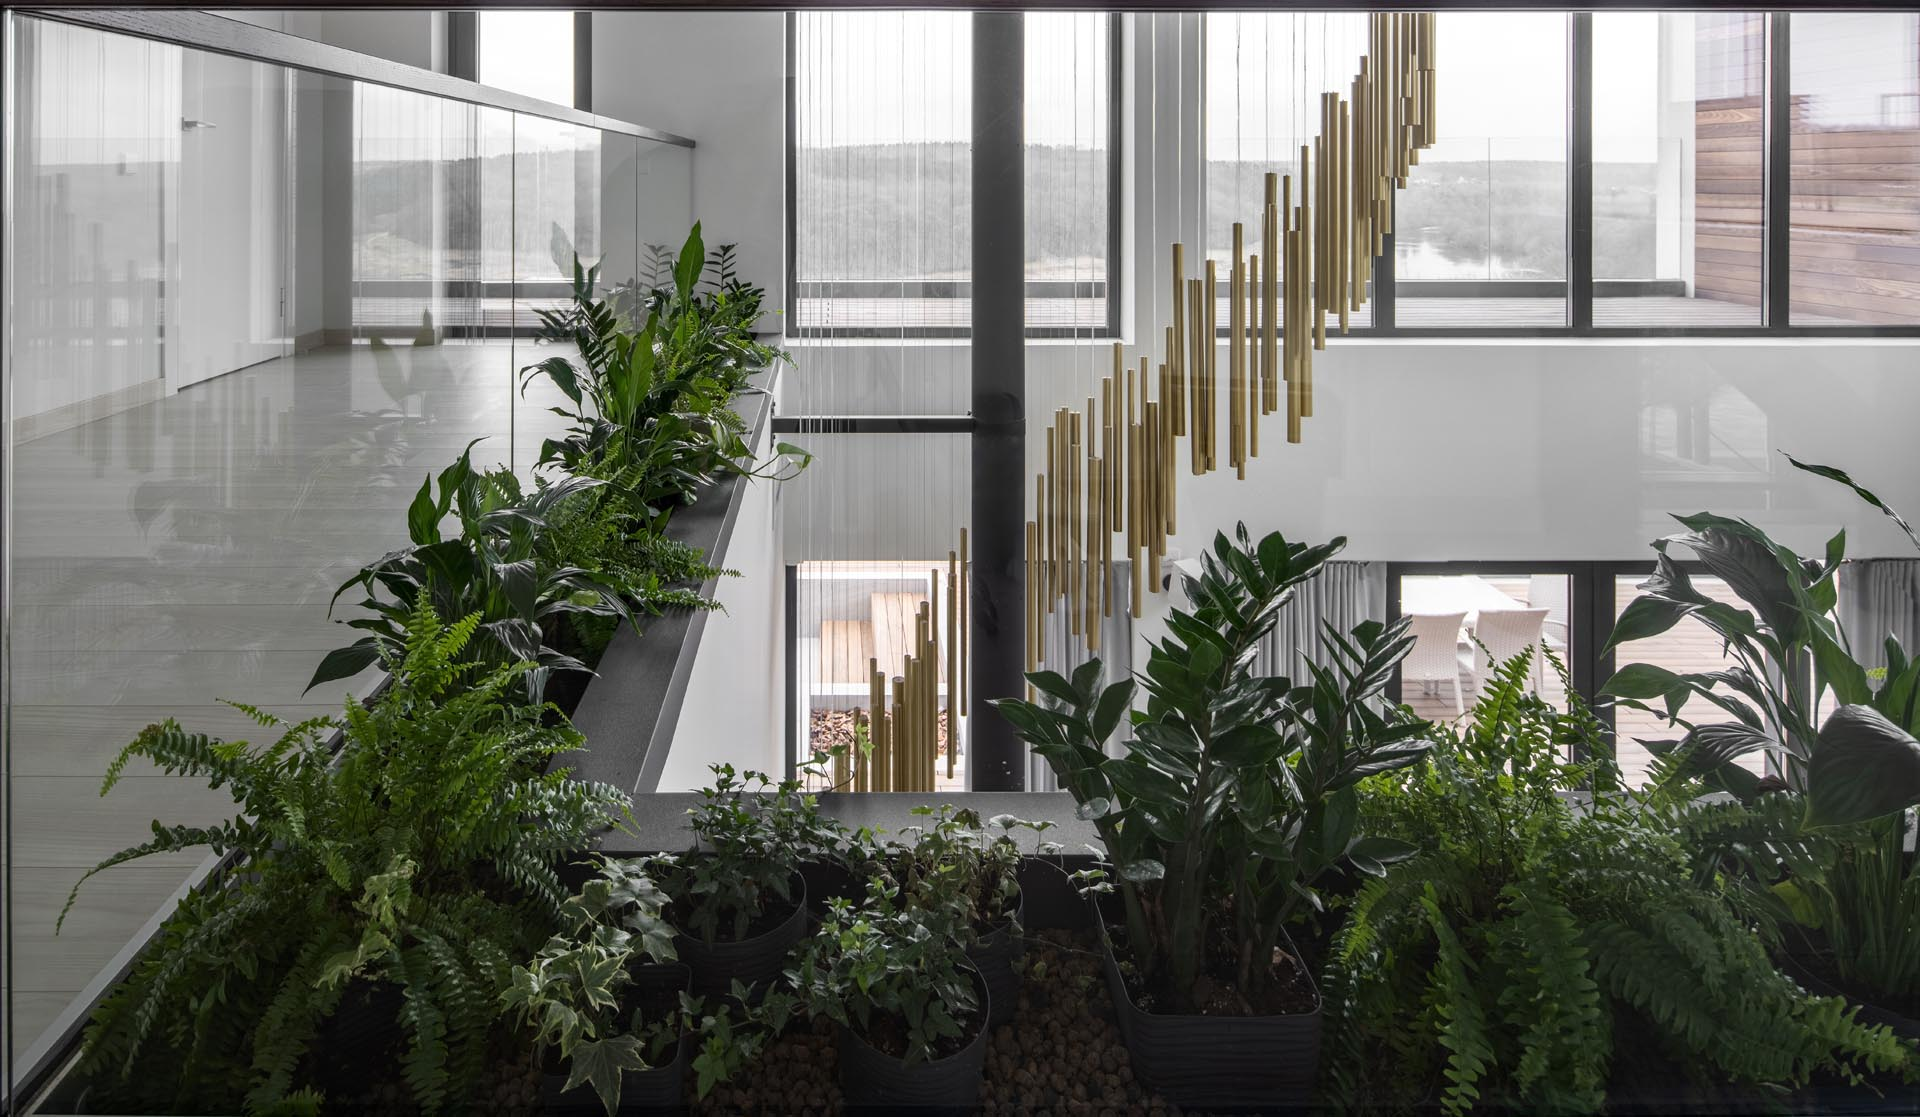 An open walkway with built-in planters and glass railings.